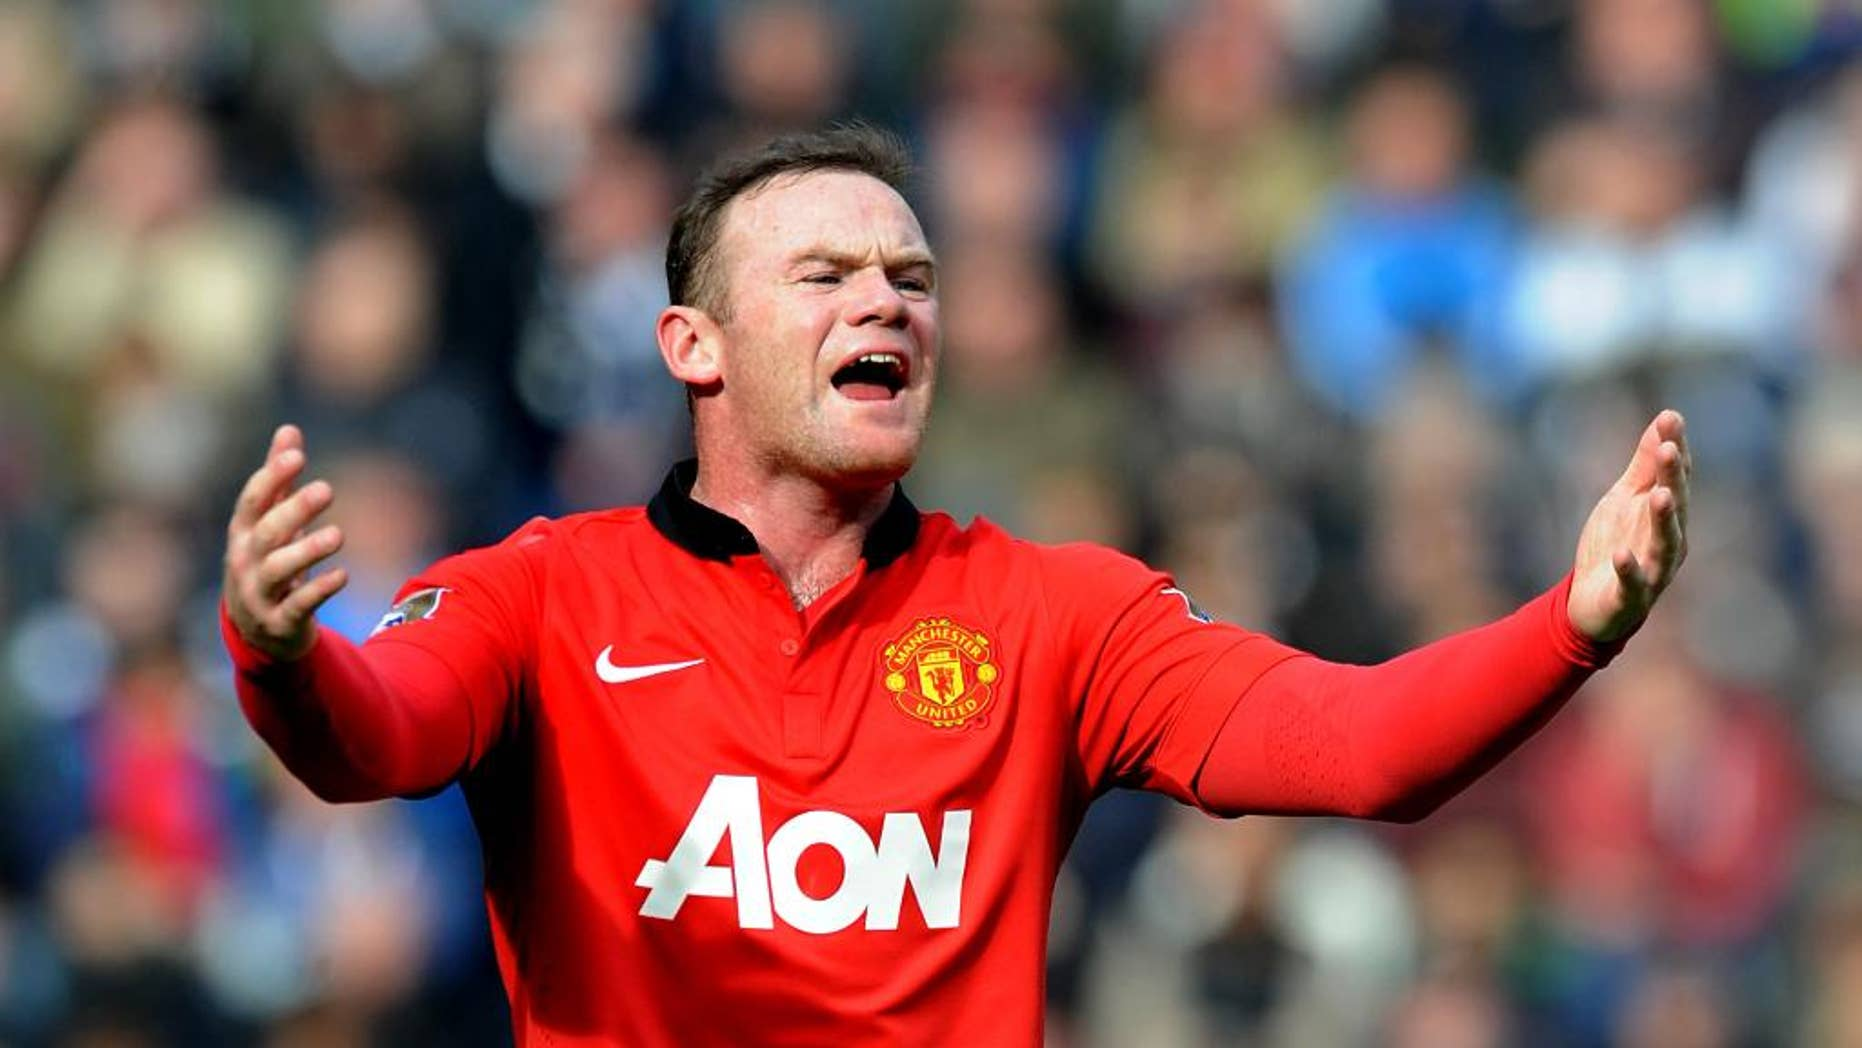 FILE - This is a Saturday, March 8, 2014 file photo of  Manchester United's Wayne Rooney as he  shouts instructions to teammates during the English Premier League soccer match between West Bromwich Albion and Manchester United at The Hawthorns Stadium in West Bromwich, England. Manchester United on Monday July 14, 2014 secured the most lucrative kit deal in football, announcing that Adidas has agreed to pay $1.3 billion over 10 years to take over the sponsorship from Nike. The deal, worth 75 million pounds ($128 million) a year from 2015, was announced after Nike decided that trebling the cost of its existing 13-year equipment supply contract was not good value for the company.  (AP Photo/Rui Vieira, File)